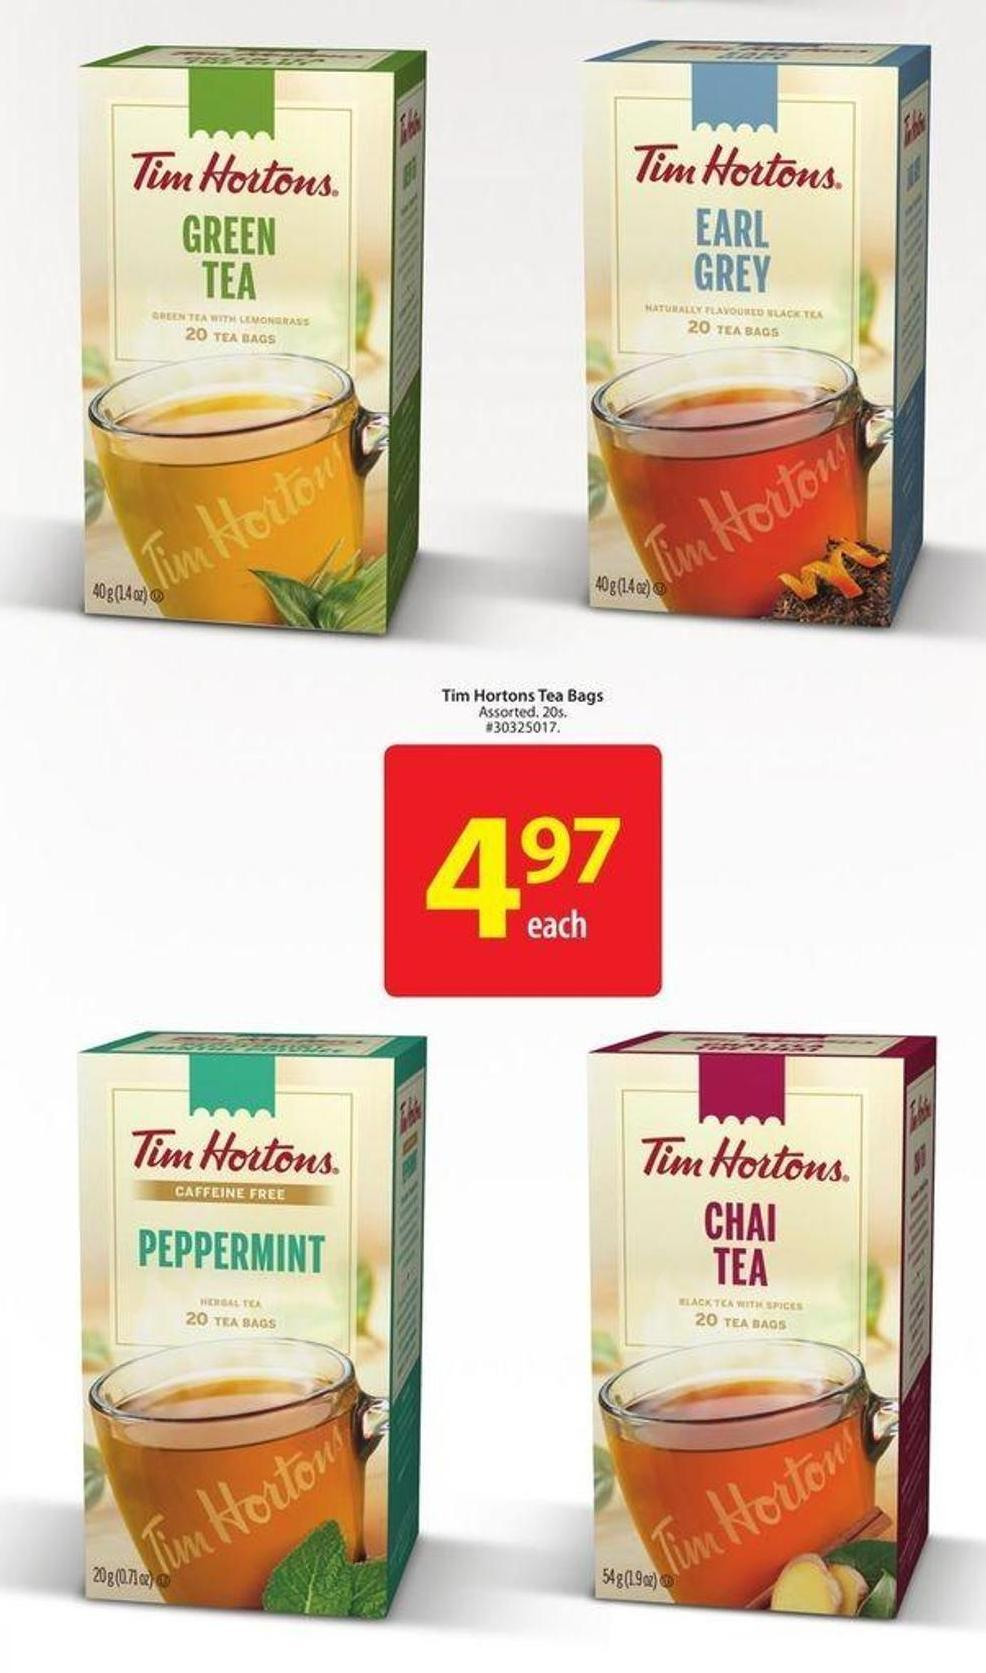 Tim Hortons Tea Bags